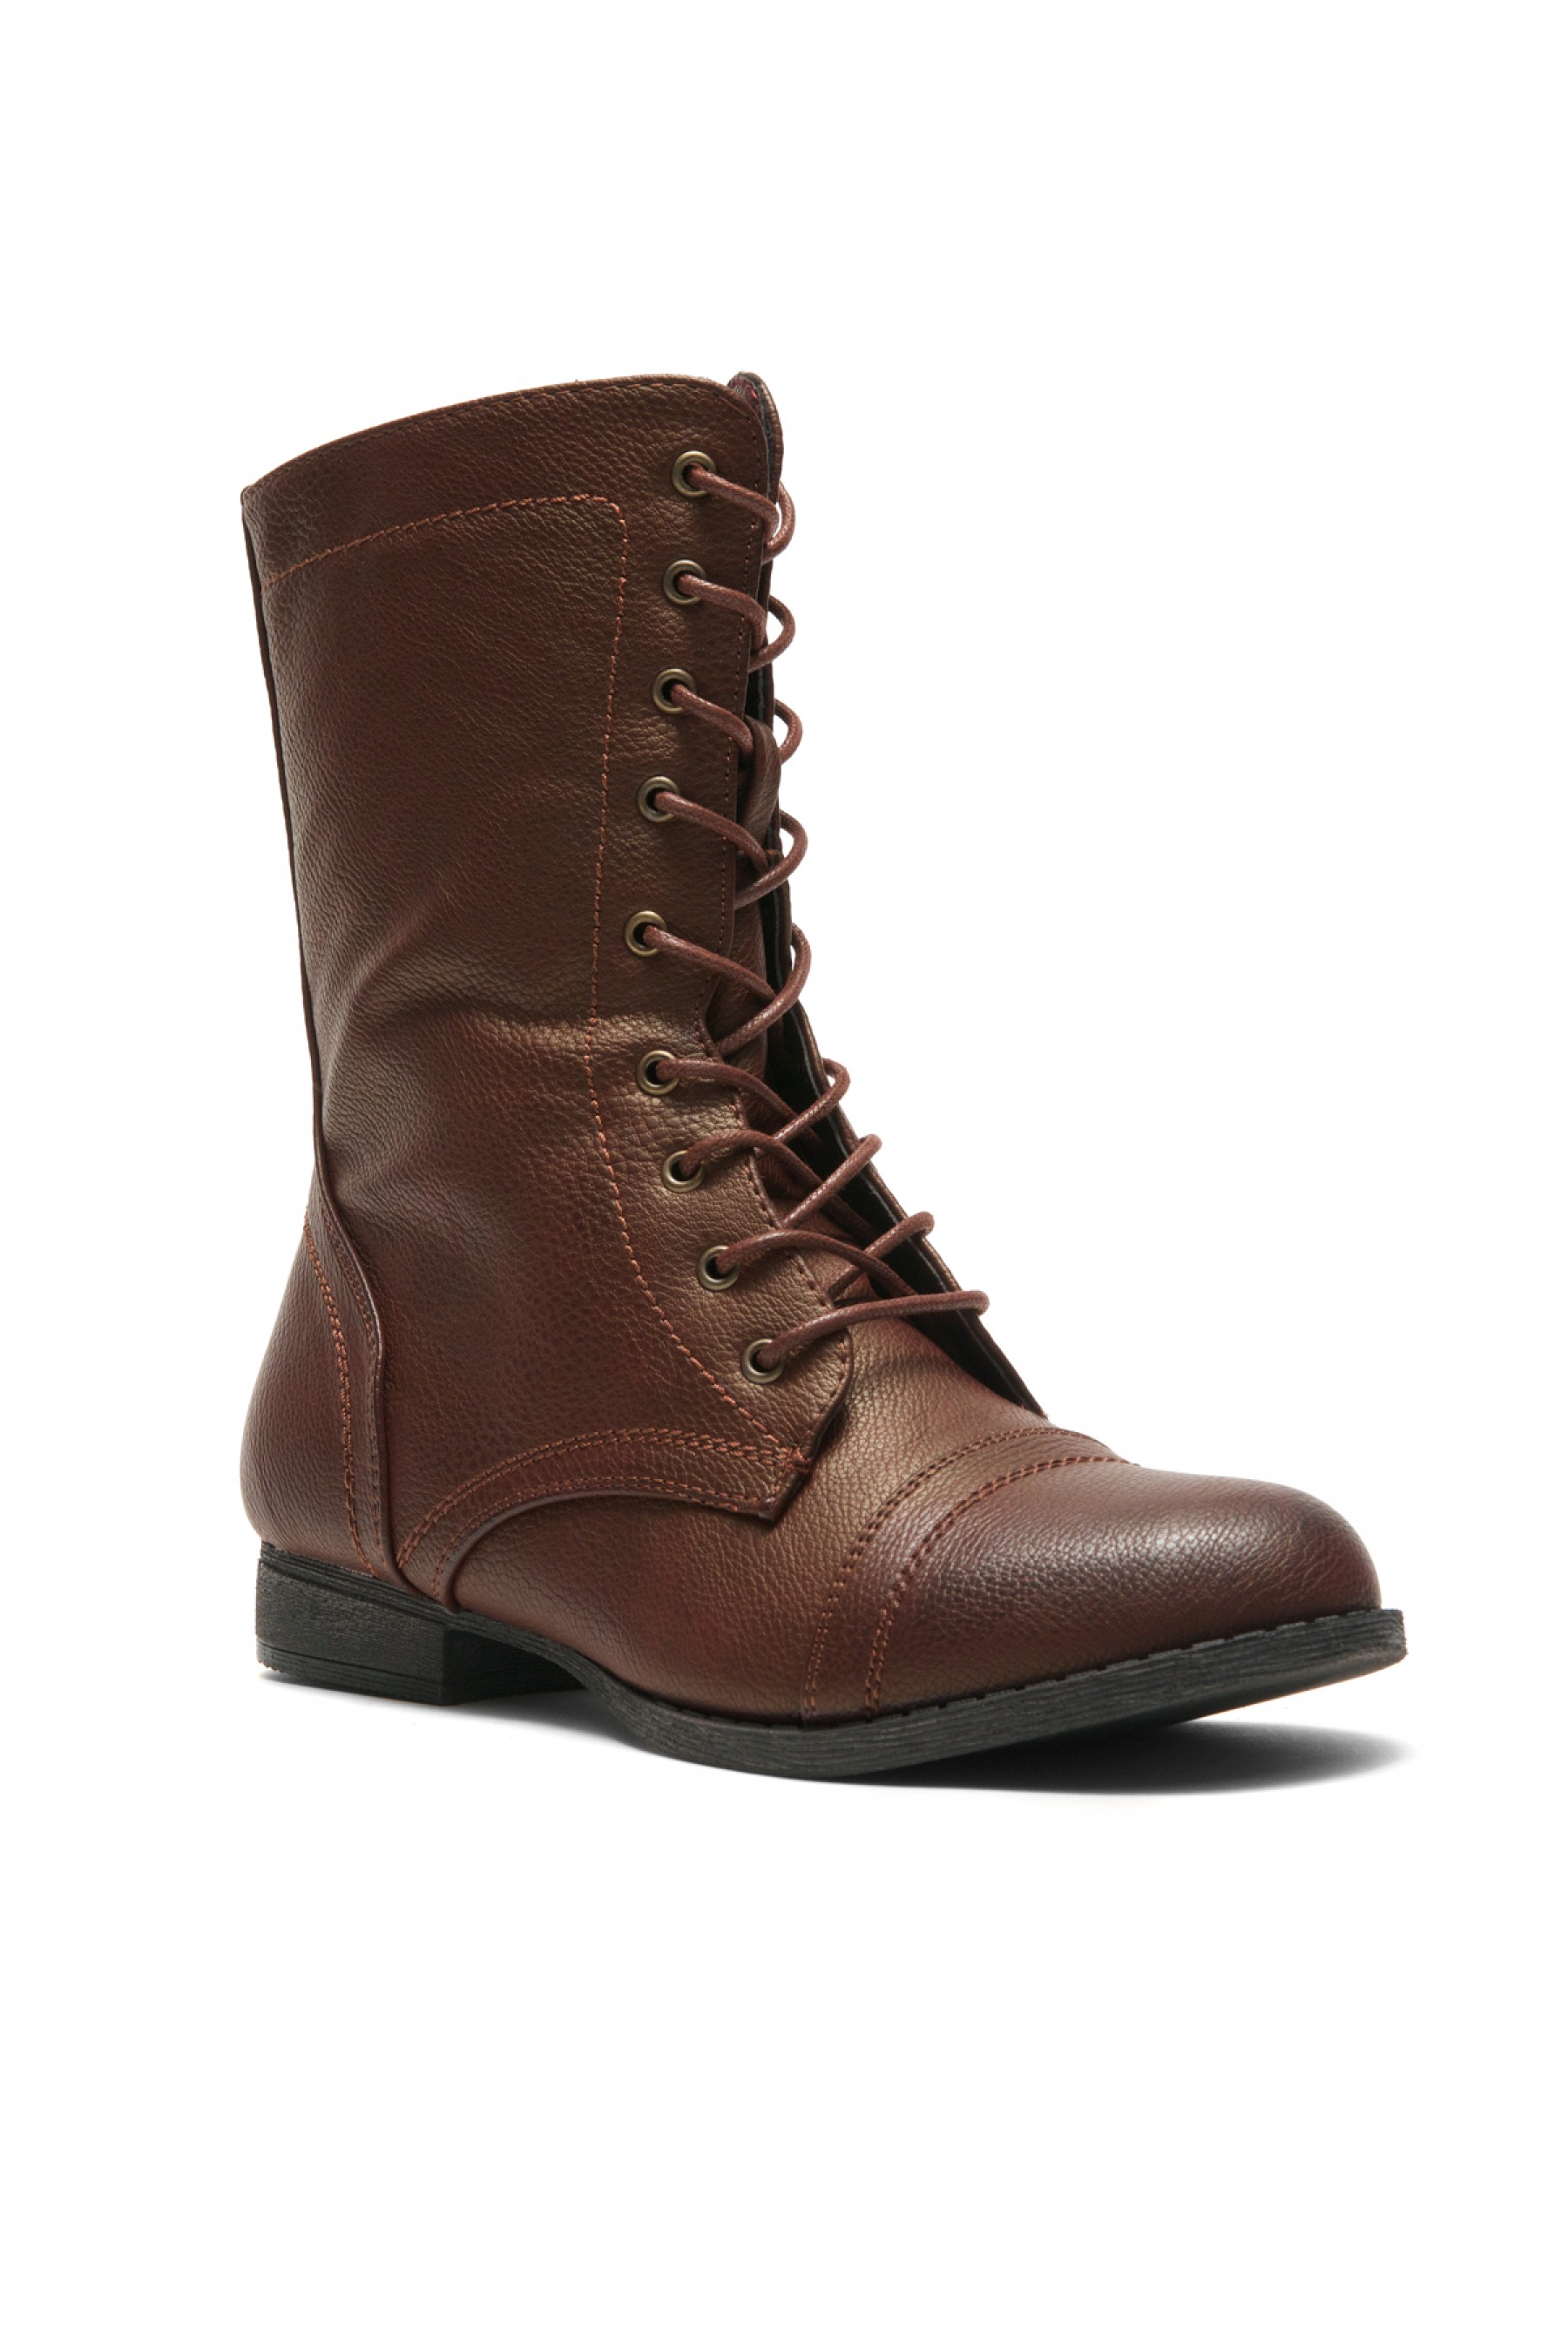 HerStyle Korraa-2 Military Lace up Combat Boots (Burgundy)